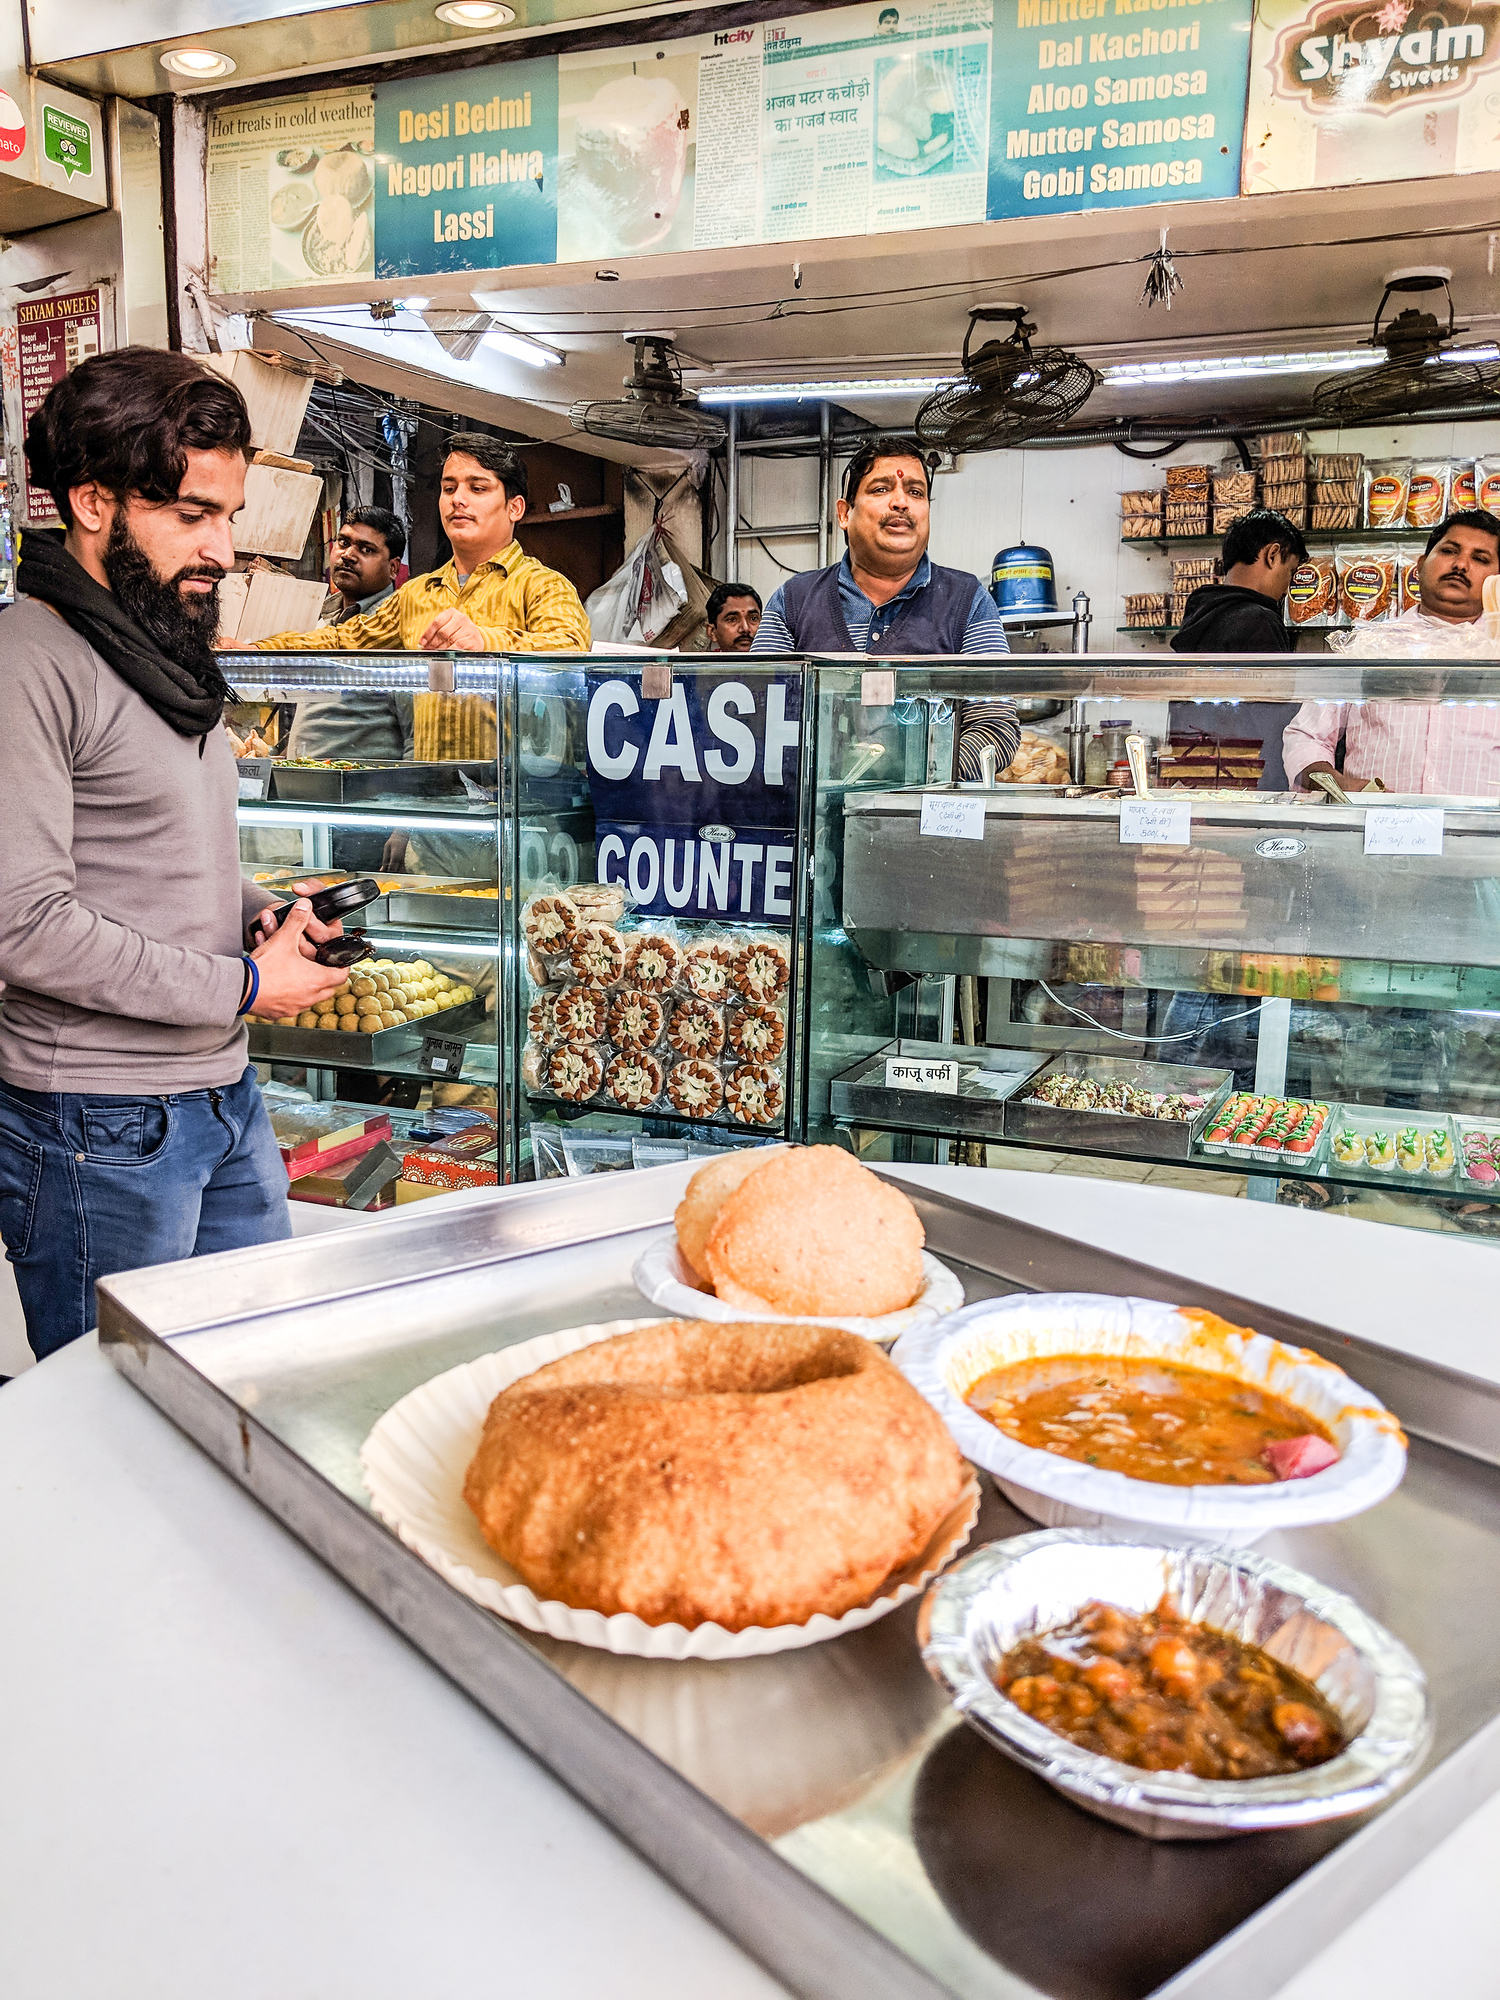 India Delhi Belly tips - how to avoid it and eat safely in India - have the right attitude. If you think you're going to be sick in India, you'll be sick.